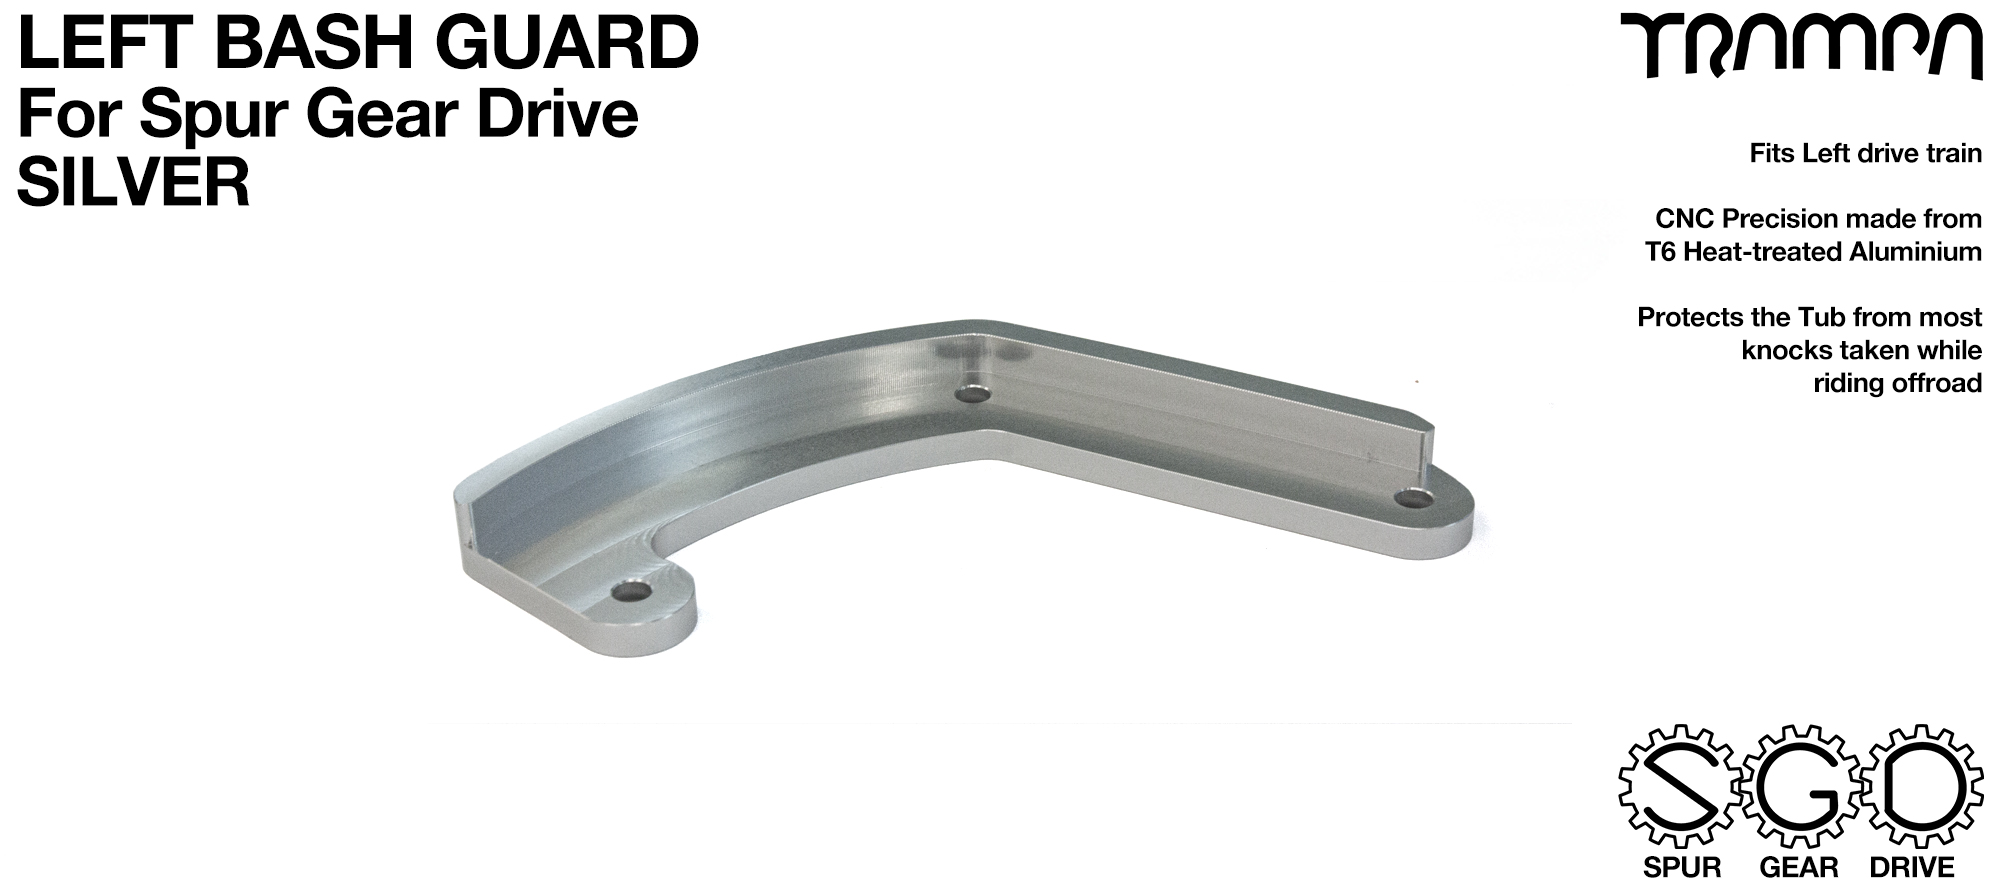 Spur Gear Drive Bash Guard - Left SIDE